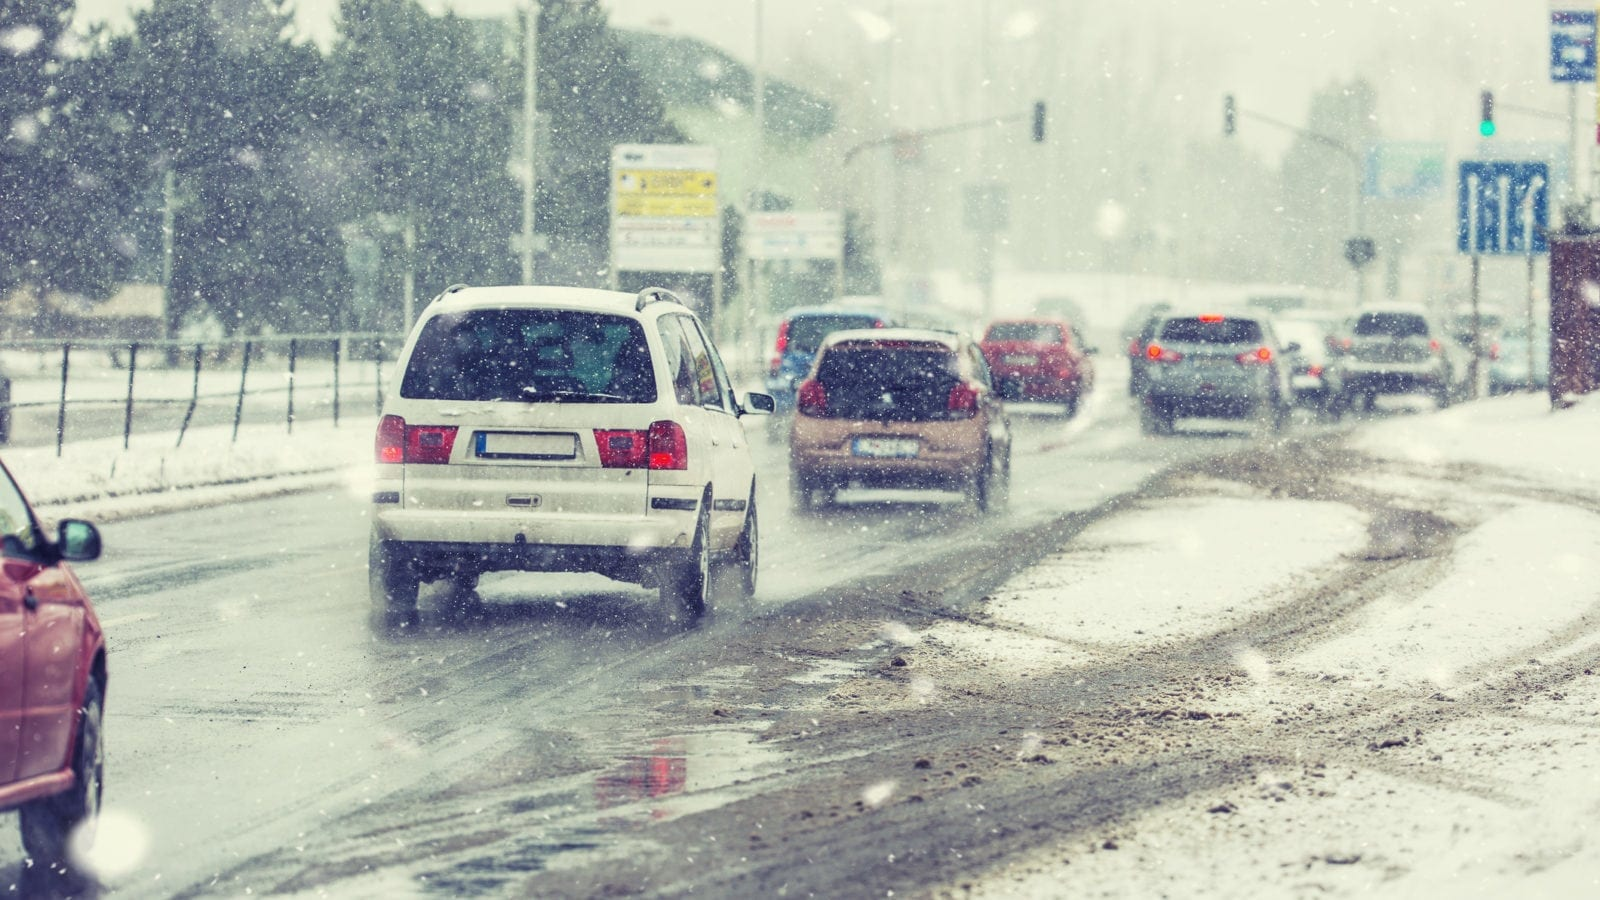 Traffic Jam On A Snowy Road Stock Photo